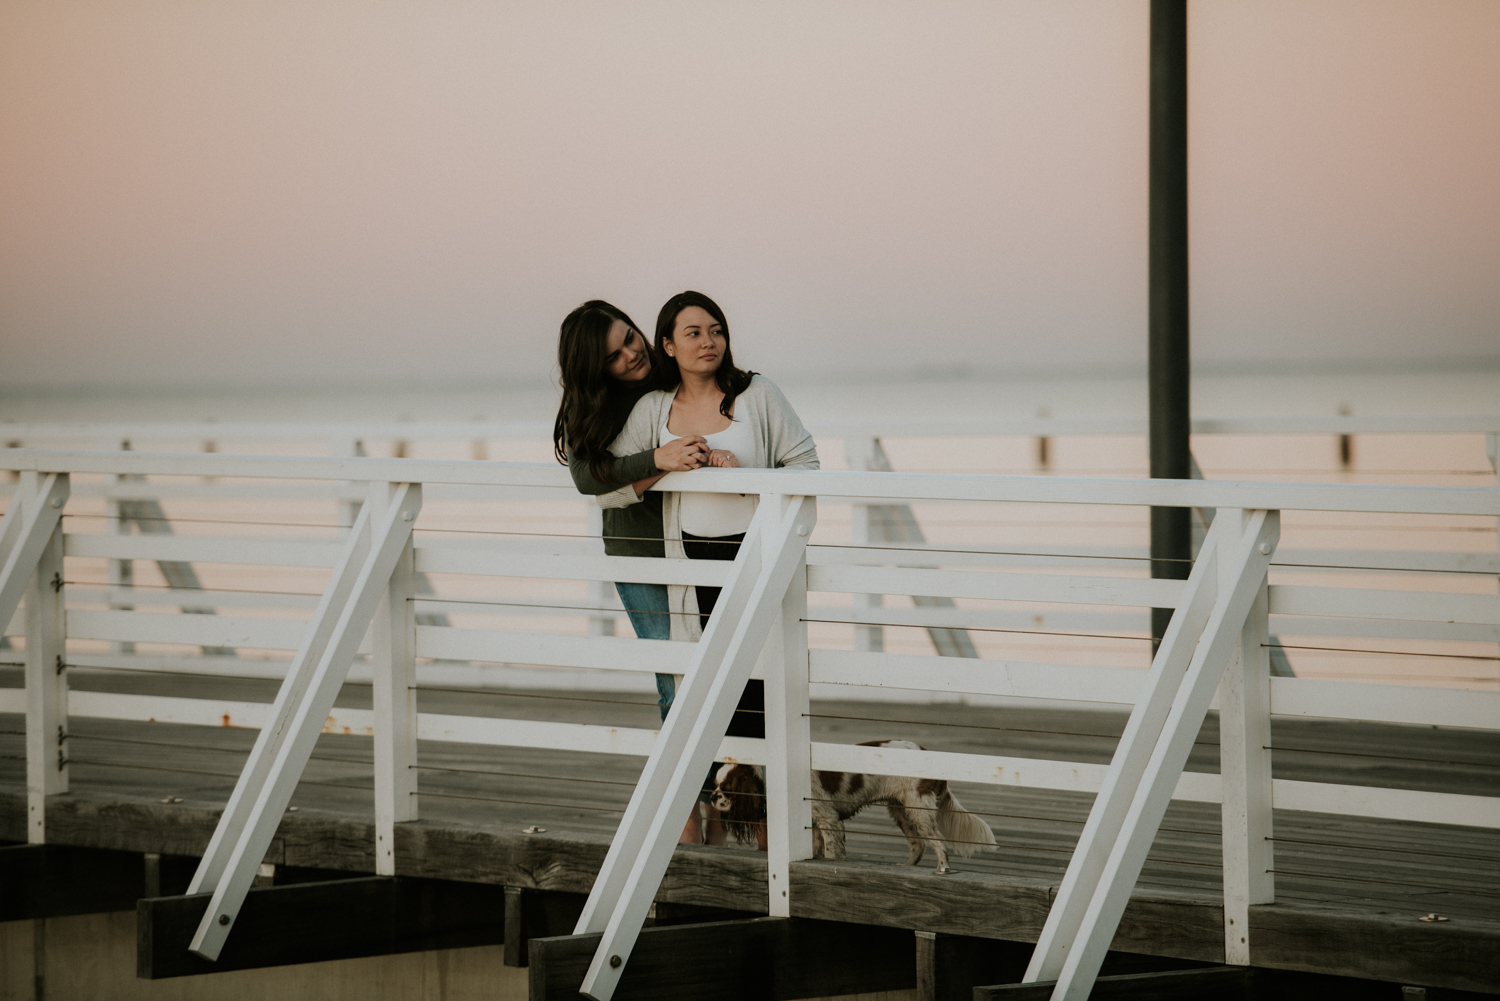 Brisbane Lesbian Wedding Photographer | Same-Sex Engagement-Elopement Photography-28.jpg